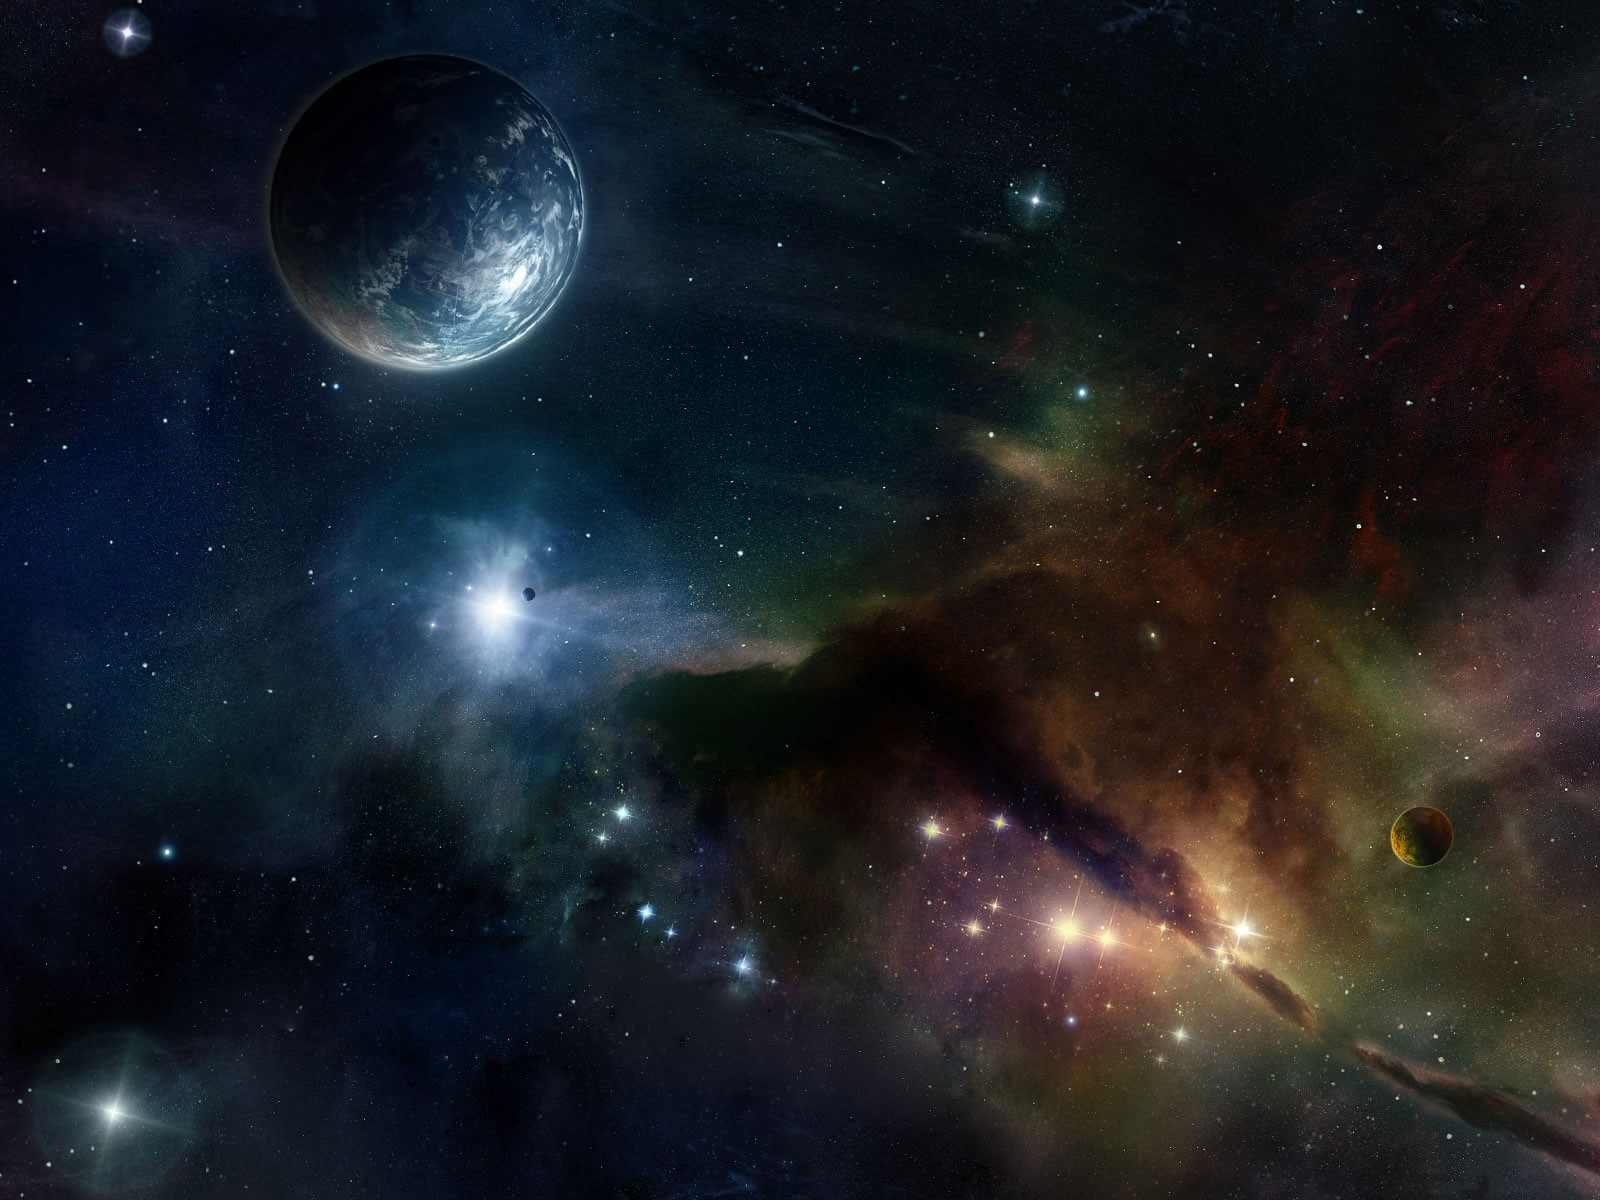 Astronomy Wallpaper: Nature's Best: Outer Space Wallpapers